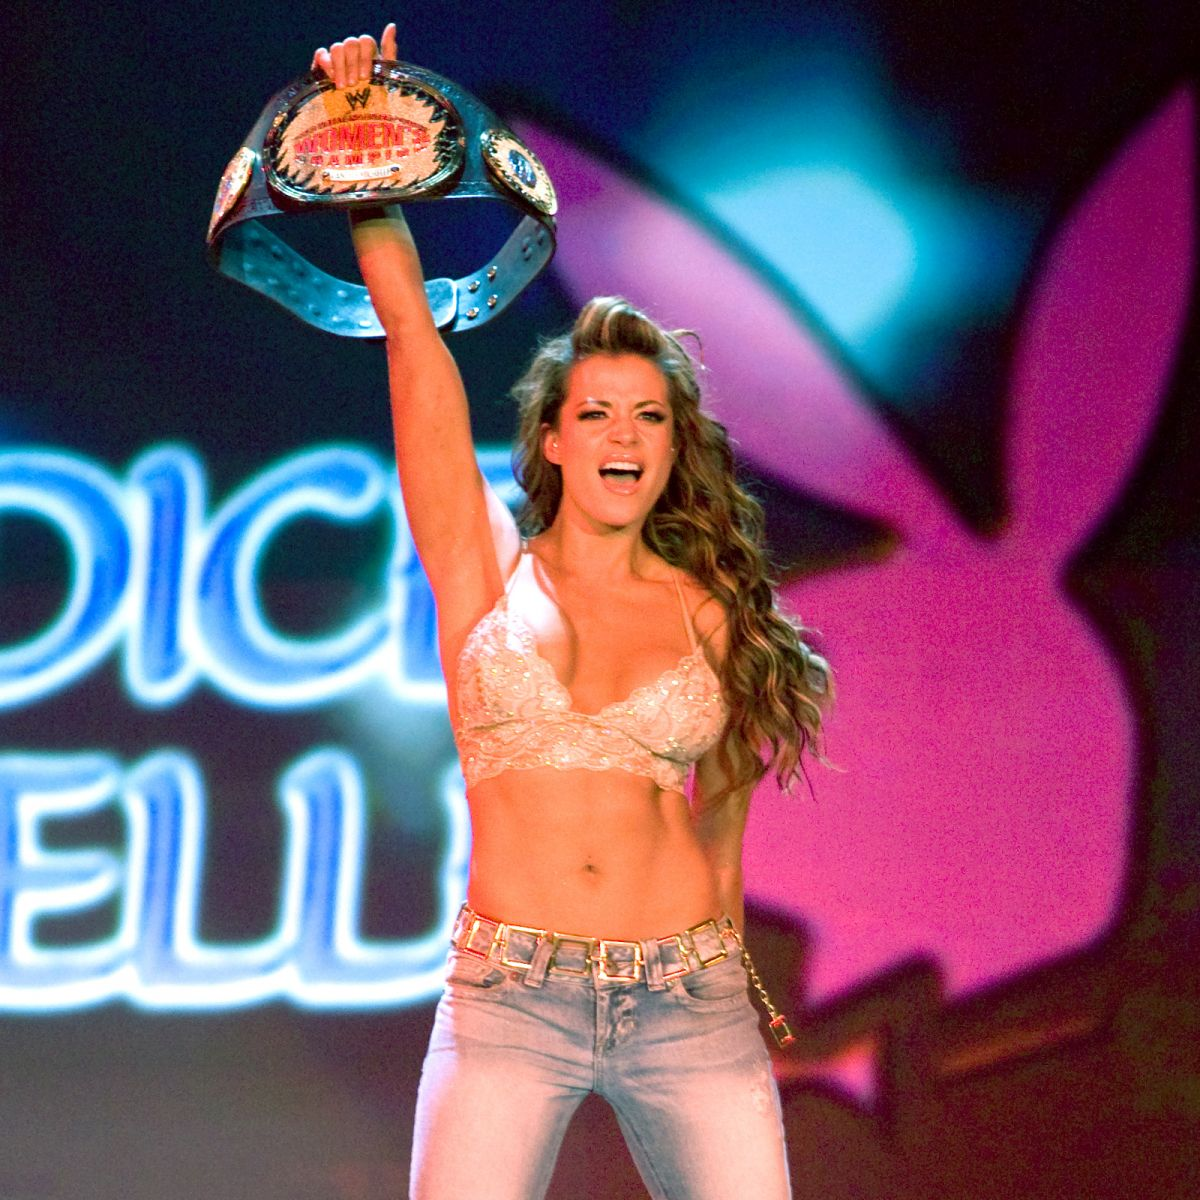 Candice michelle watch